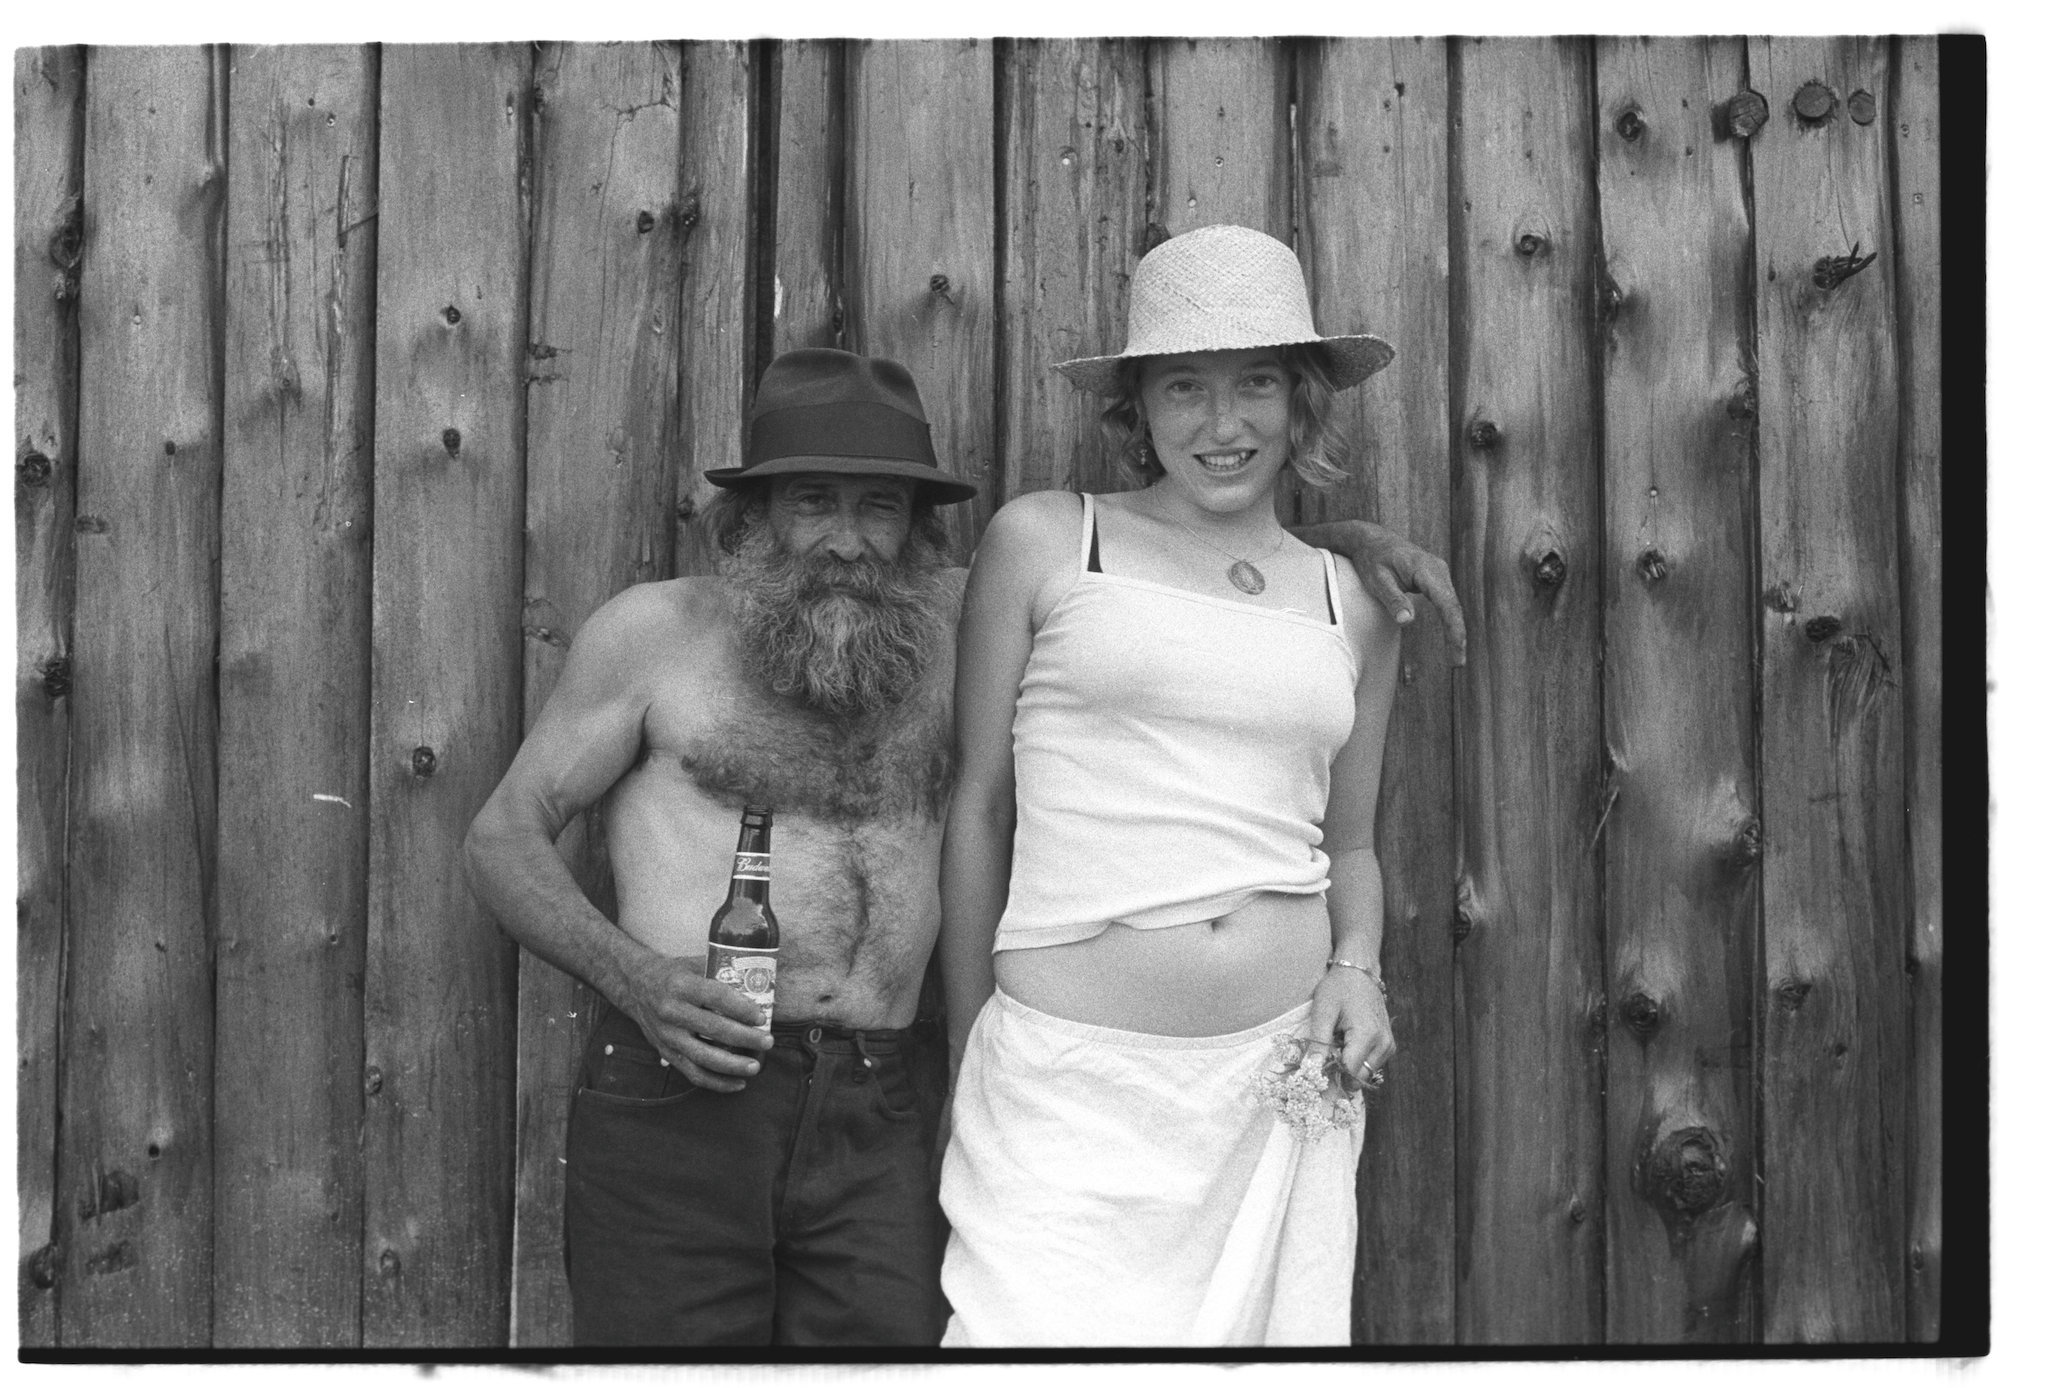 Willie and Sarah